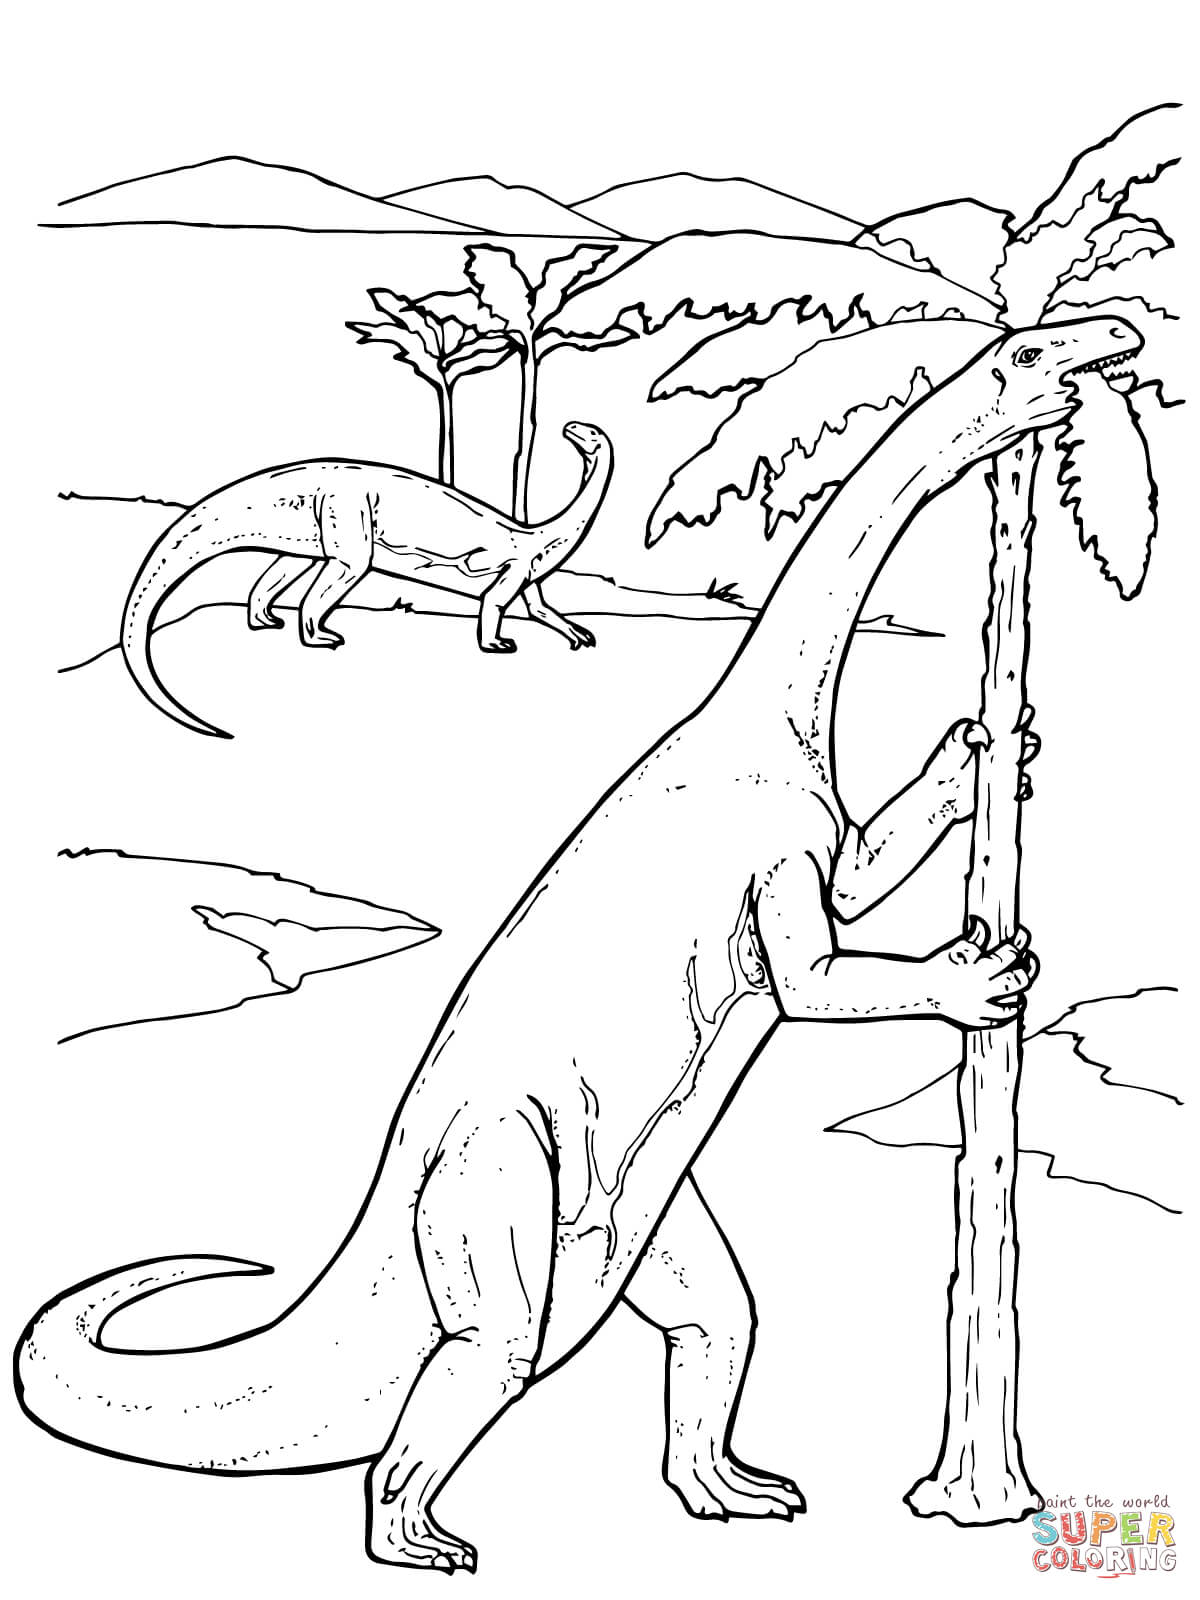 color alive coloring pages baby alive coloring pages to print award coloring pages coloring pages alive color